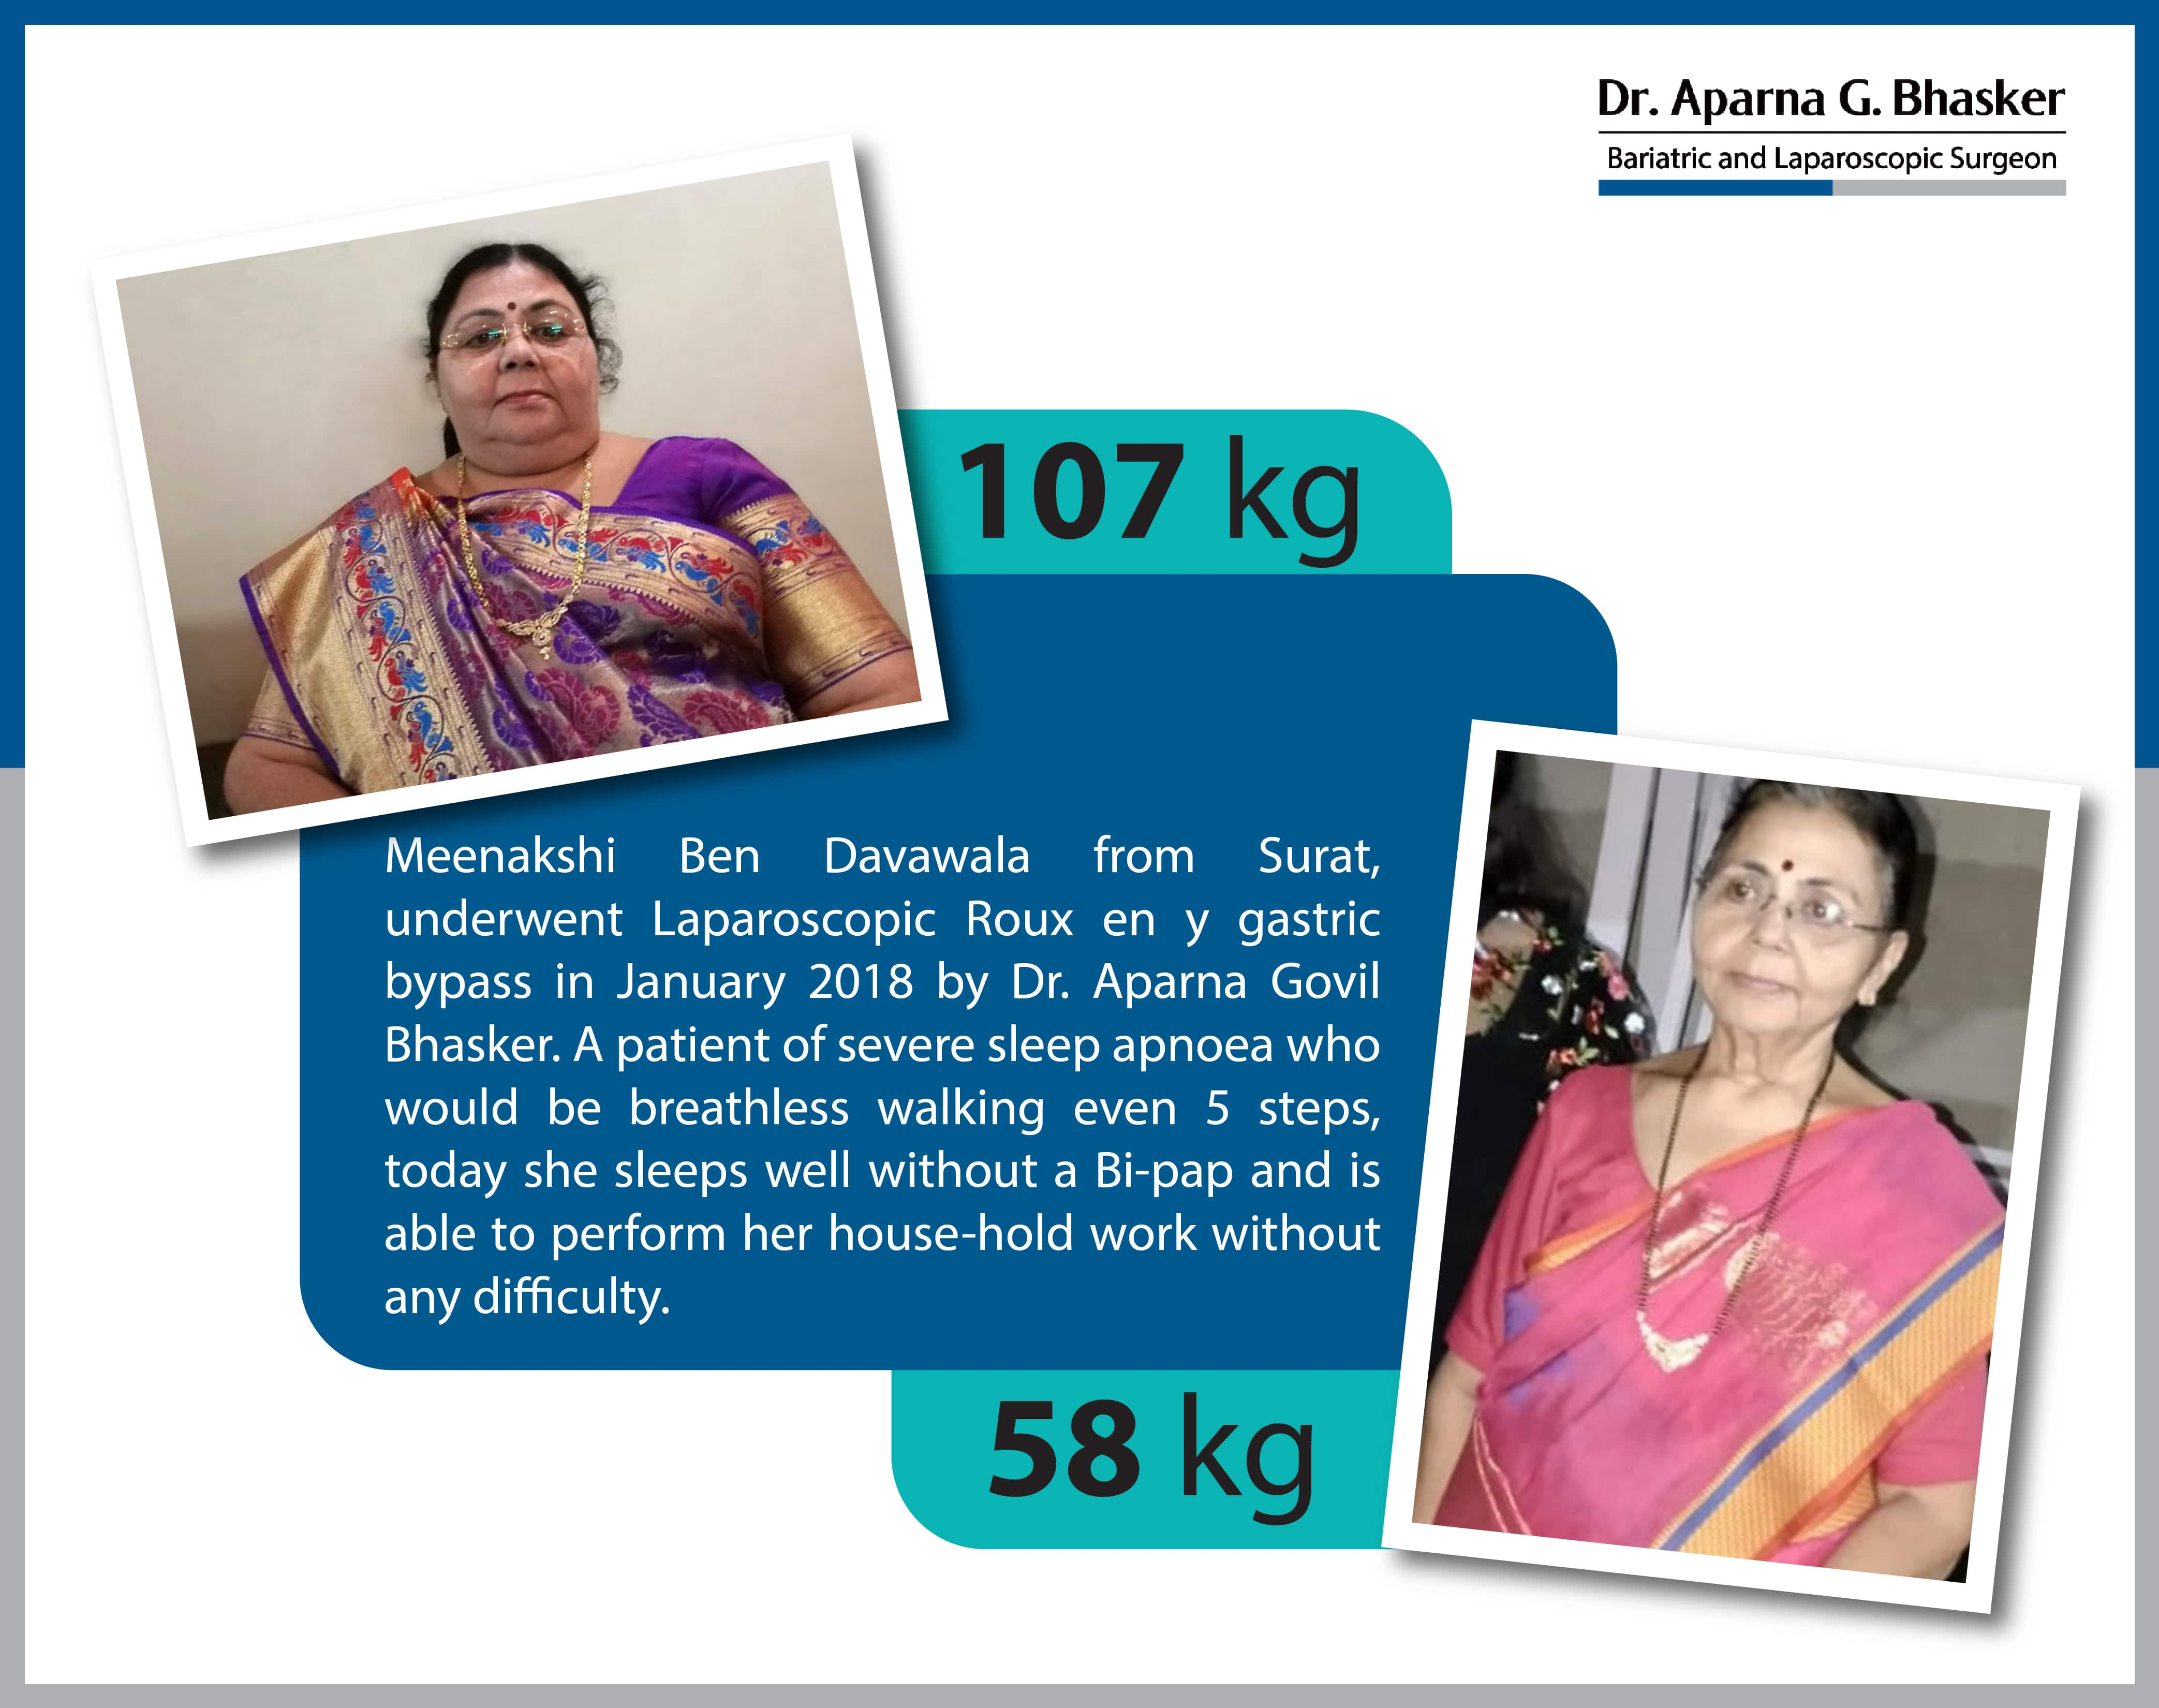 best intragastric balloon bariatric surgery and weight loss surgery in mumbai india before after photos (4)-min